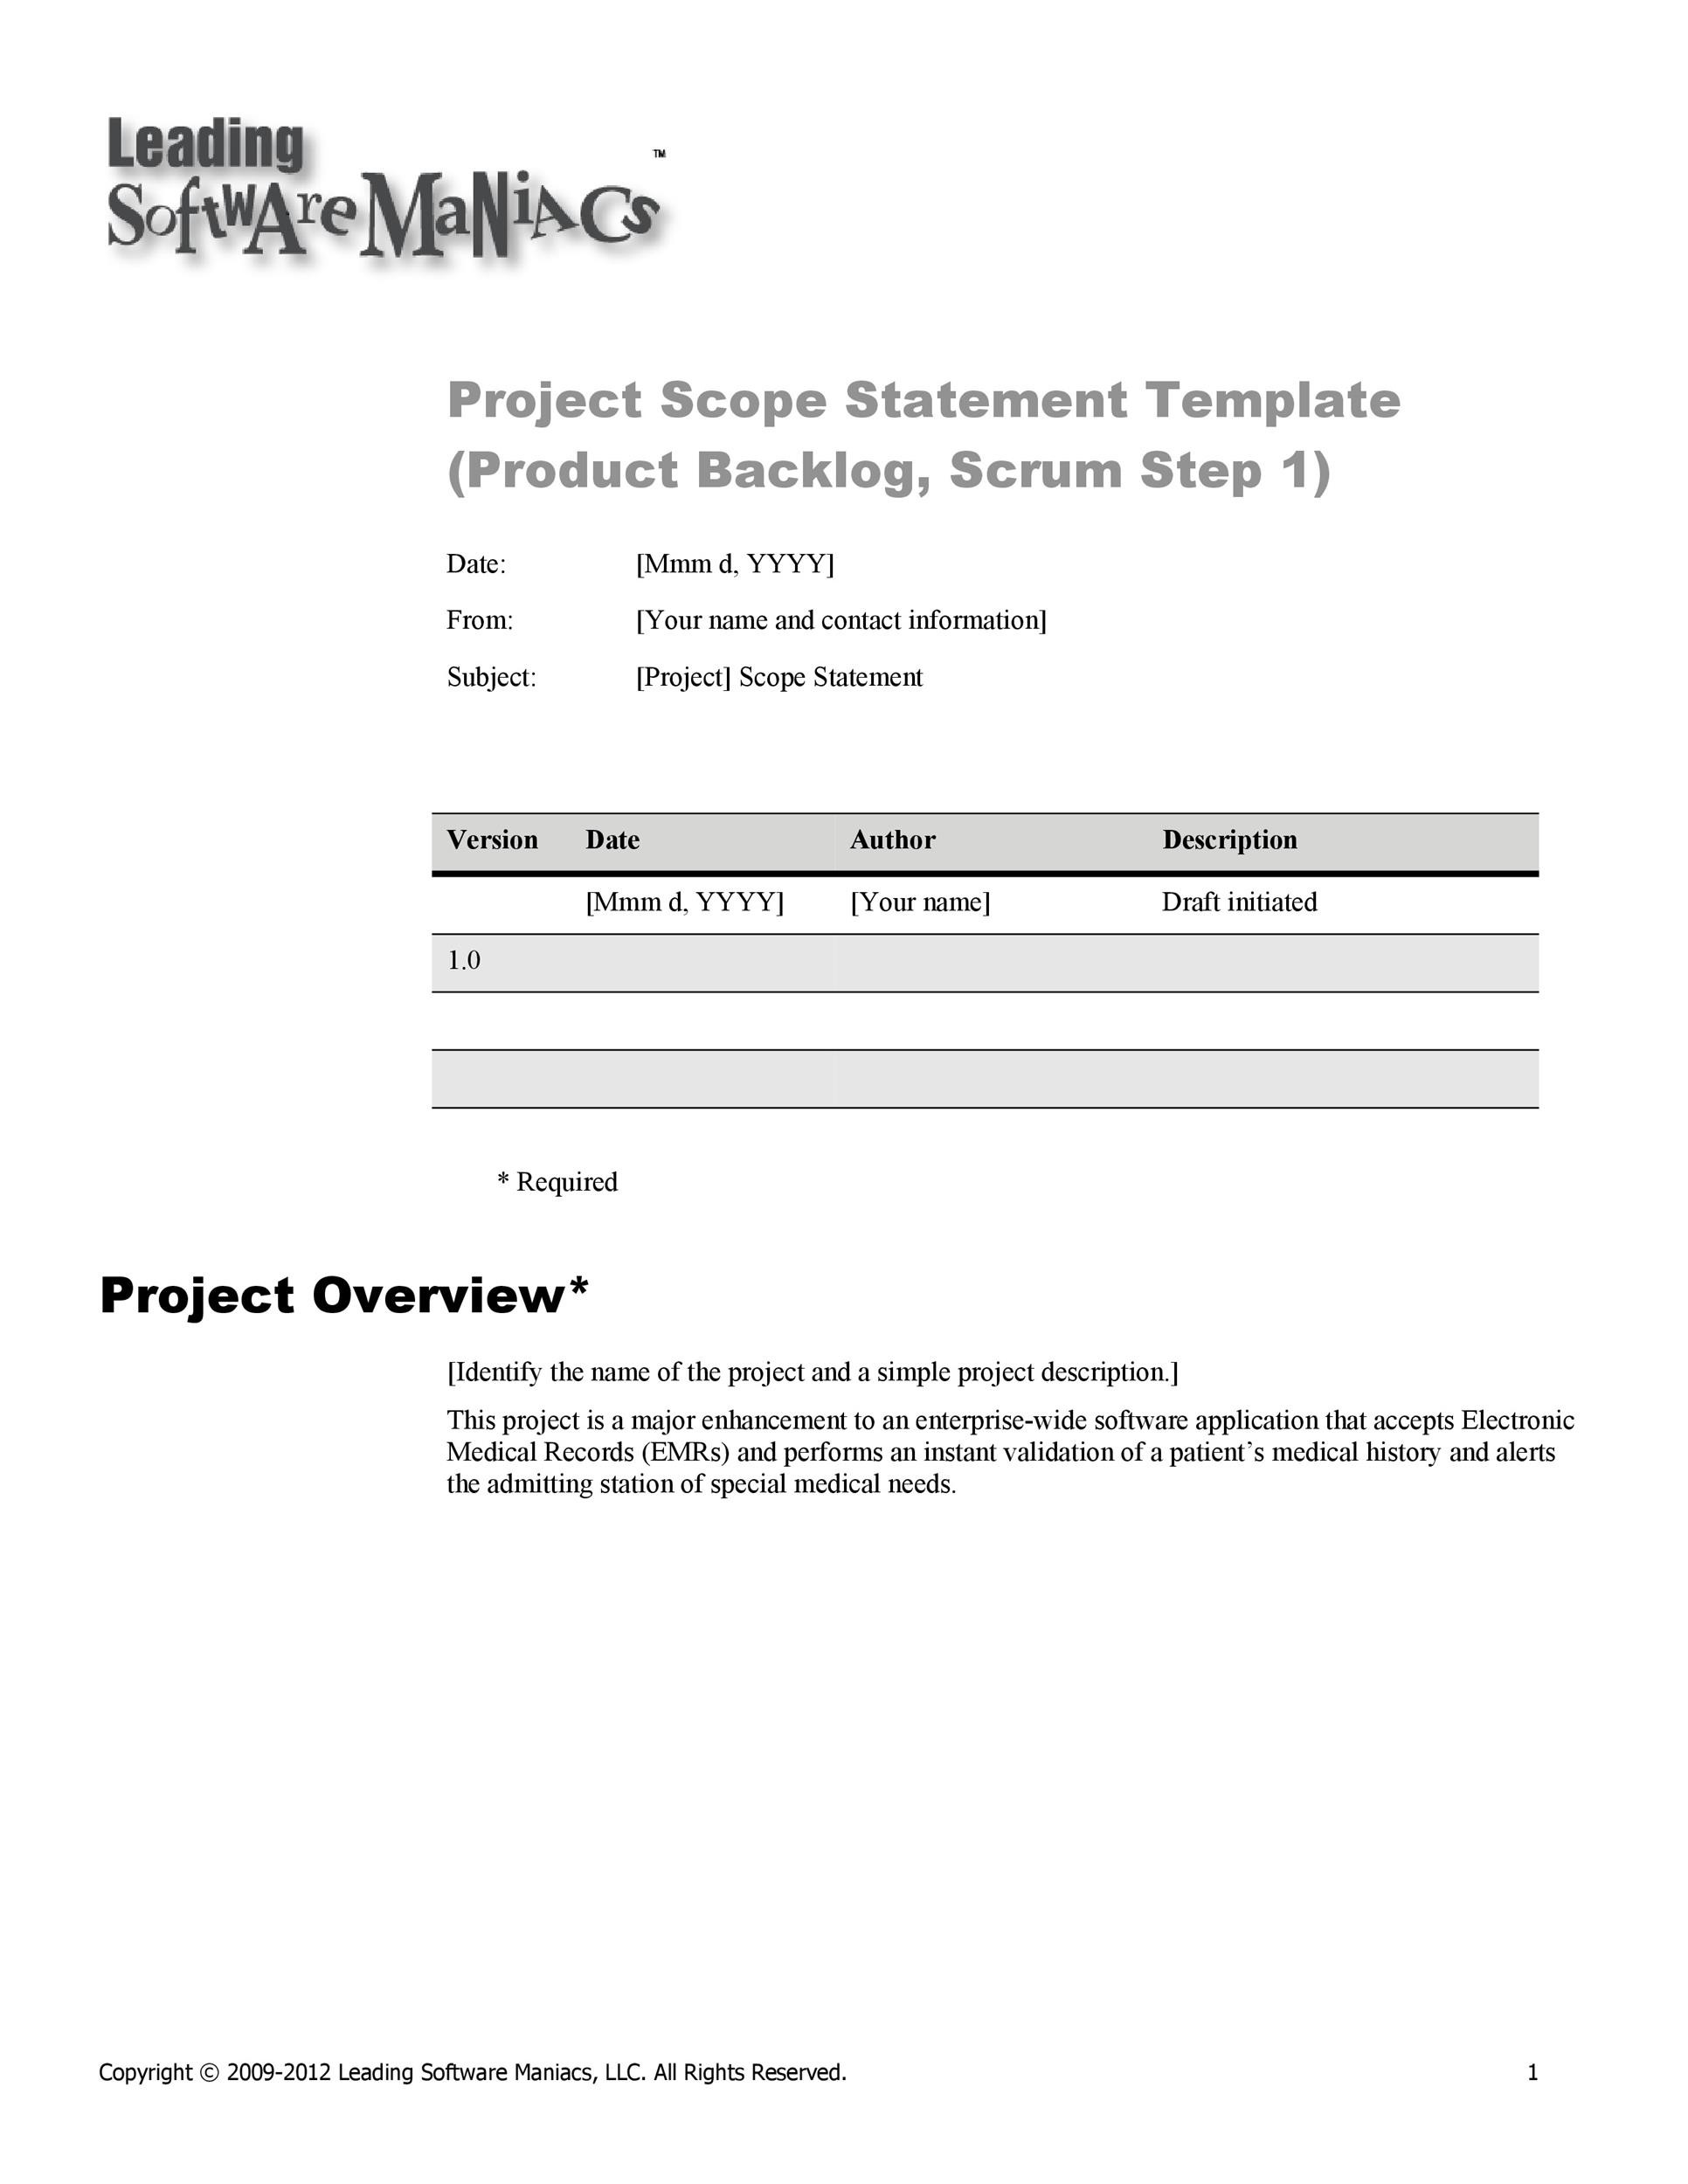 Project Scope Example 11 Template Lab Project Scope Example 11 Project  Scope Example 11 2. Project Overview Template Project Overview Template